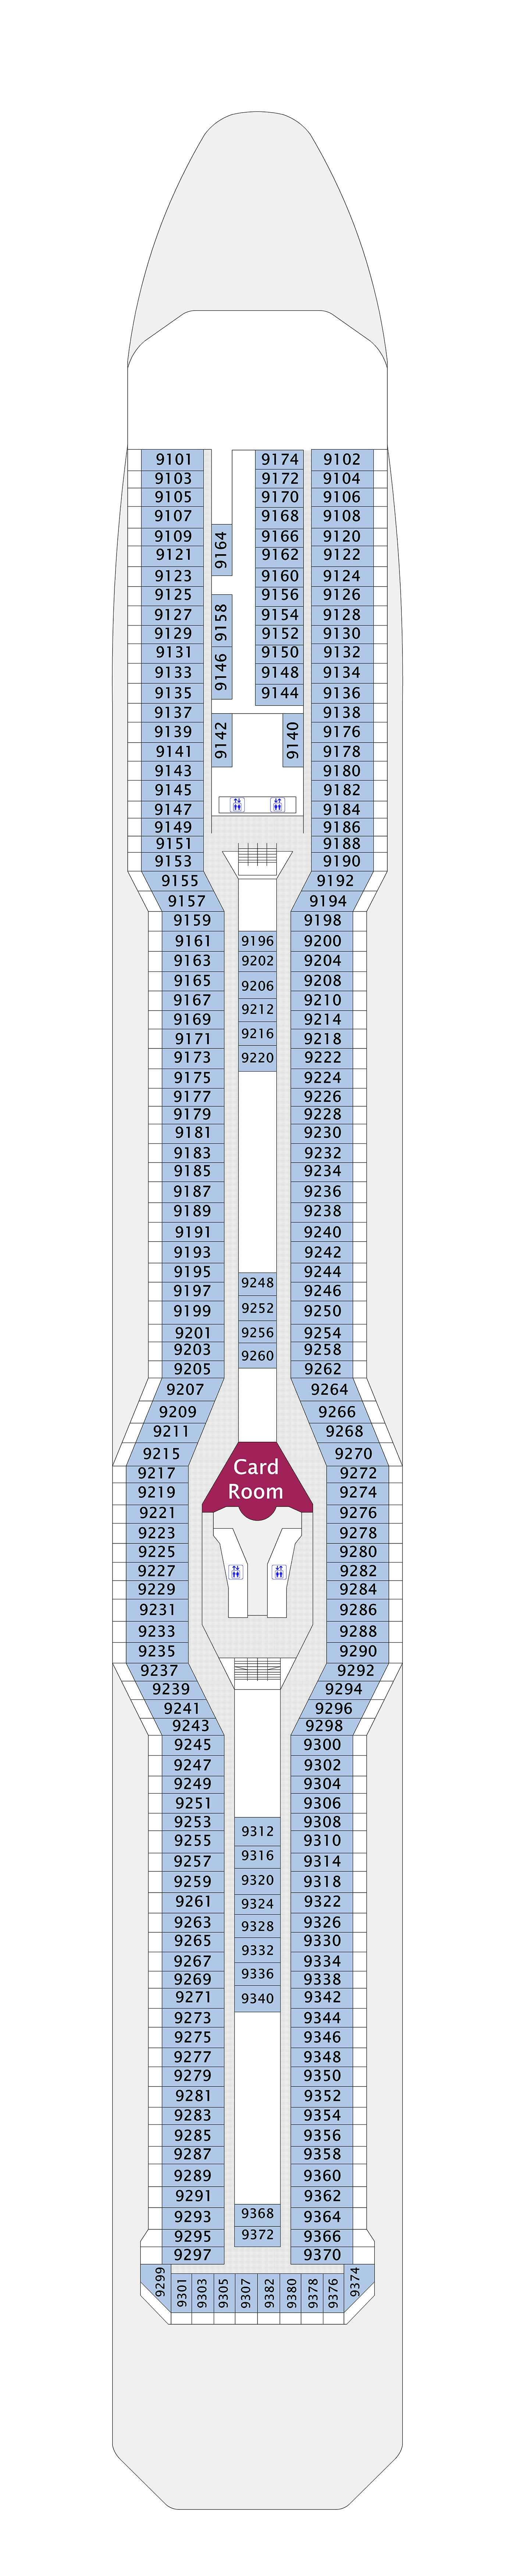 Celebrity Eclipse deck plan 9